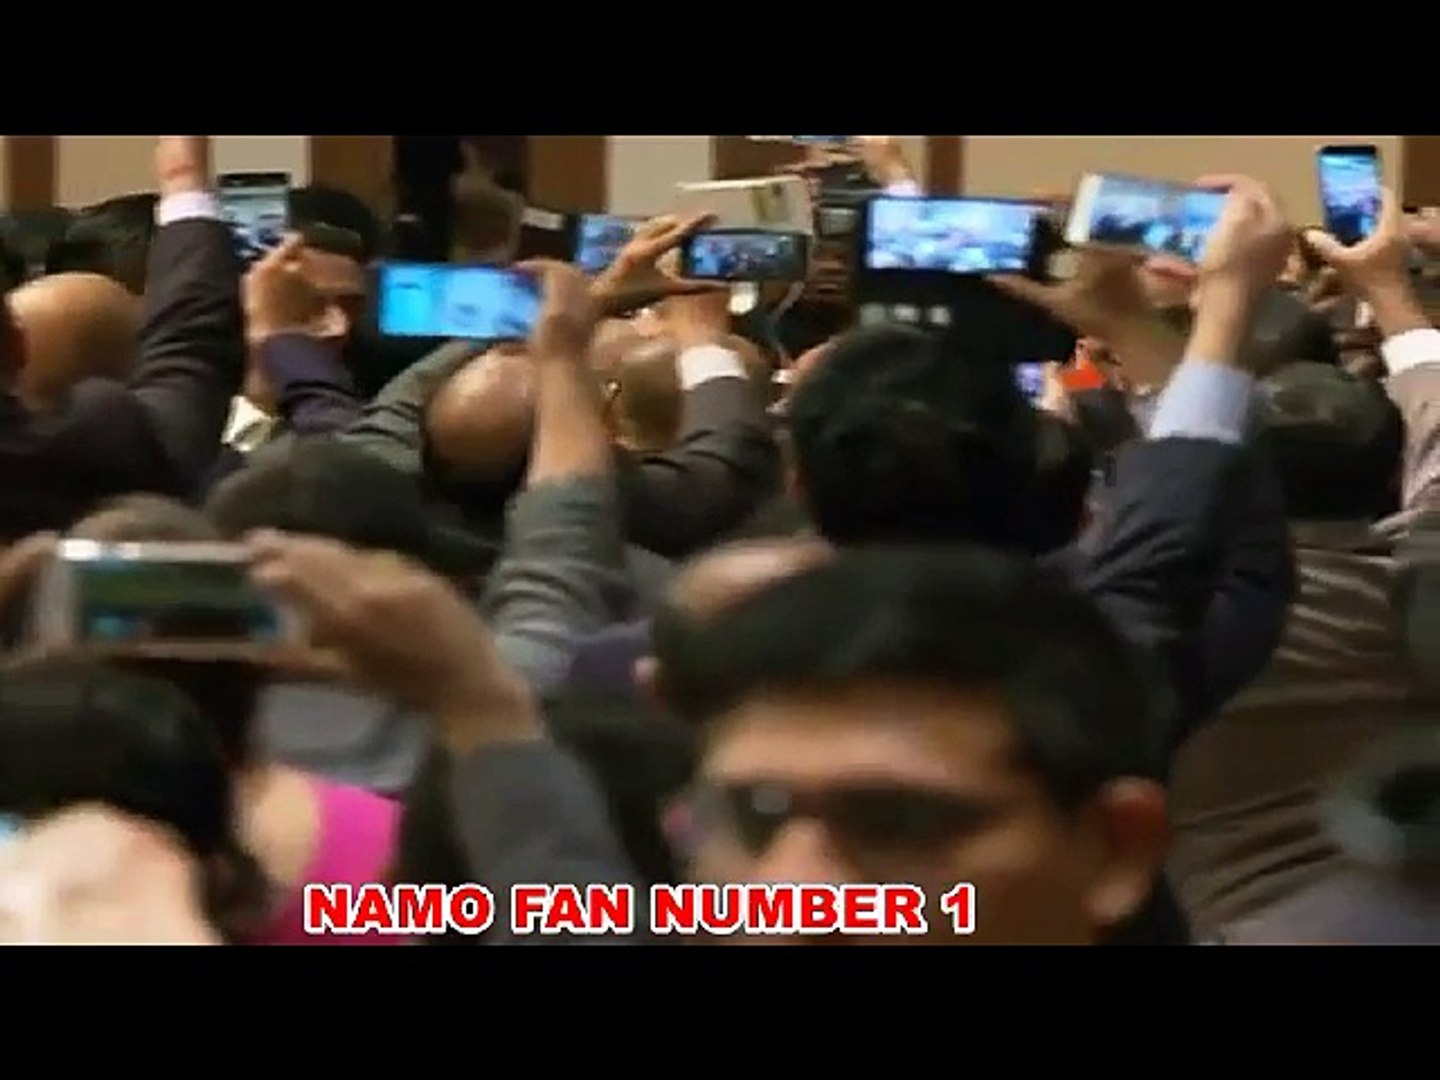 PM Modi In Japan - Indian Diaspora in Japan - Indian Community Welcome PM Modi in Japan